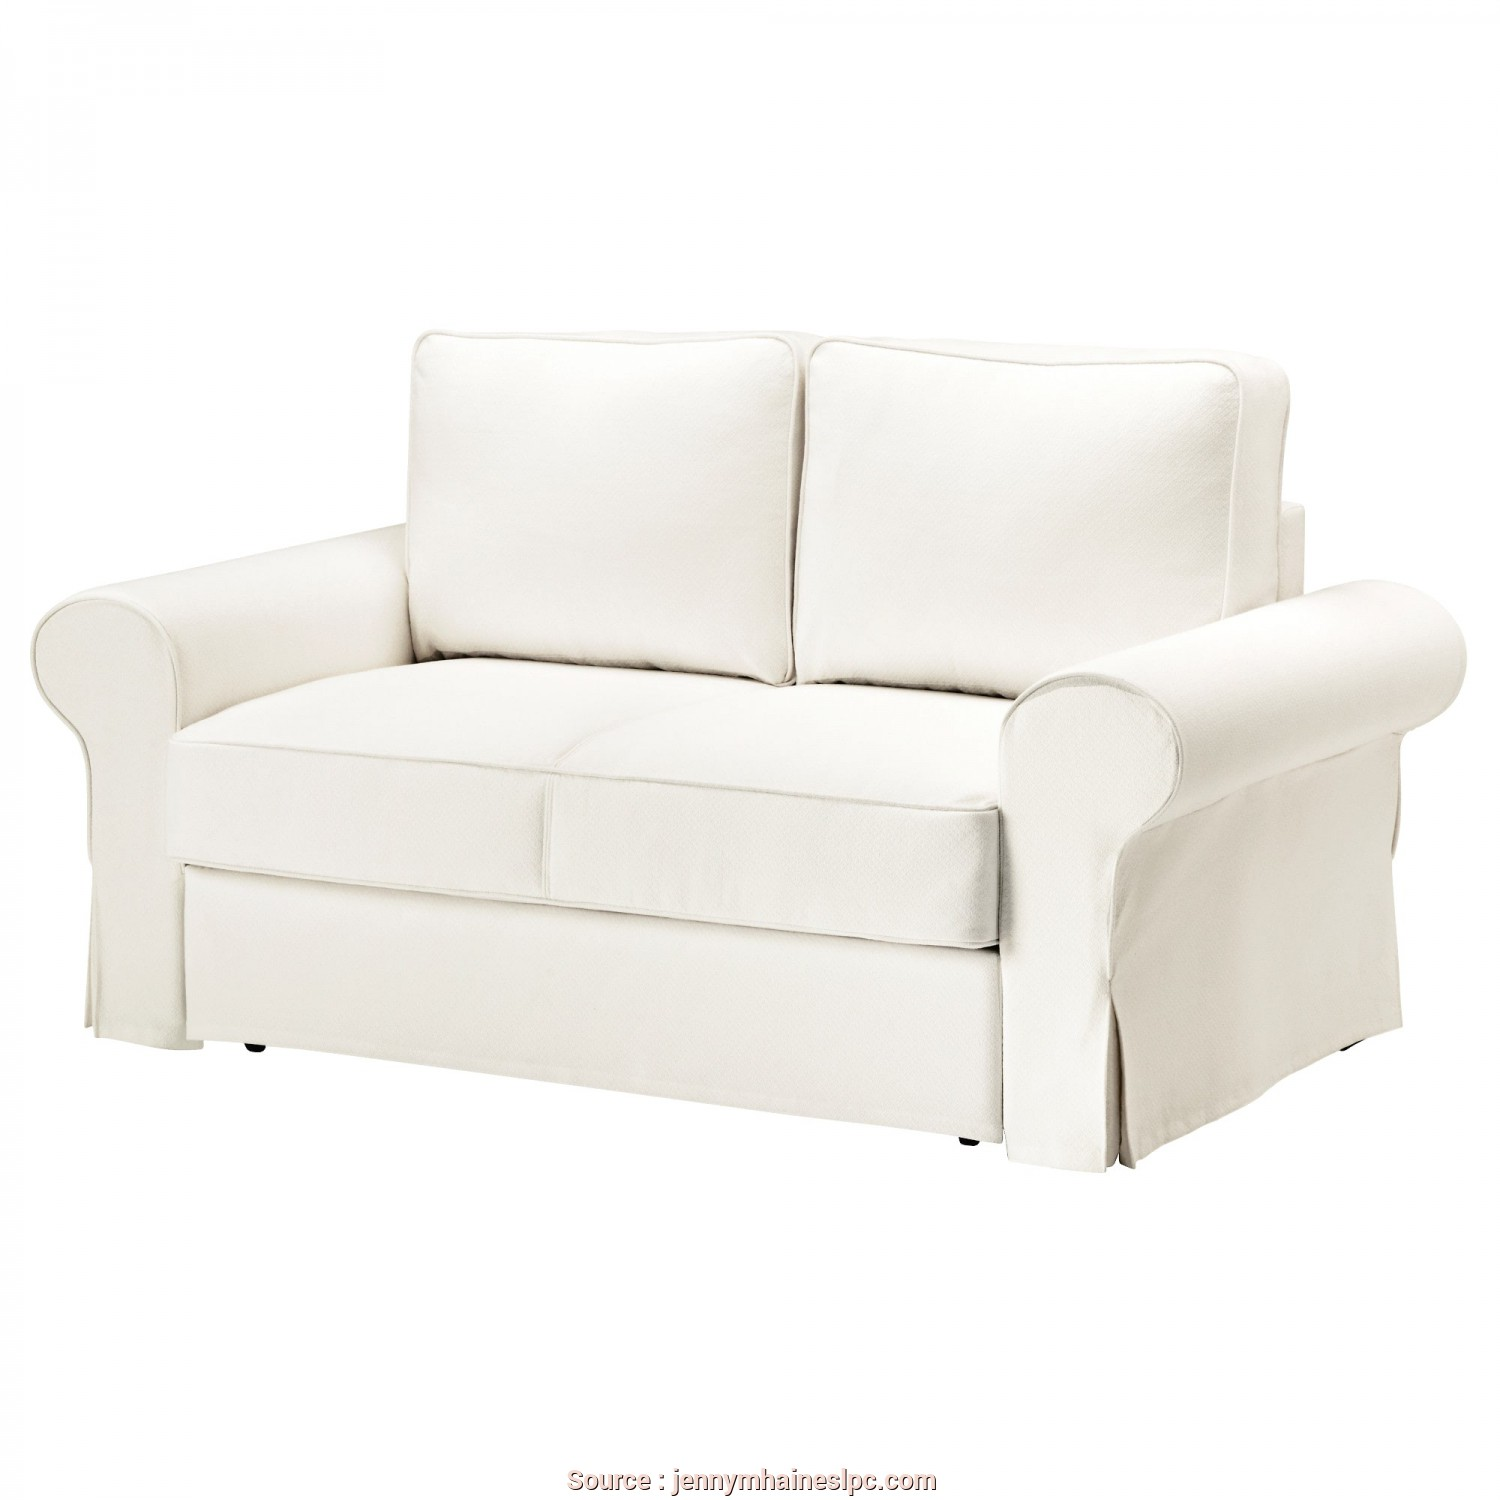 Ikea Backabro Romania, Amabile ... BACKABRO, Seat Sofa, Hylte White IKEA Avec Backabro, Seat Sofa, Hylte White